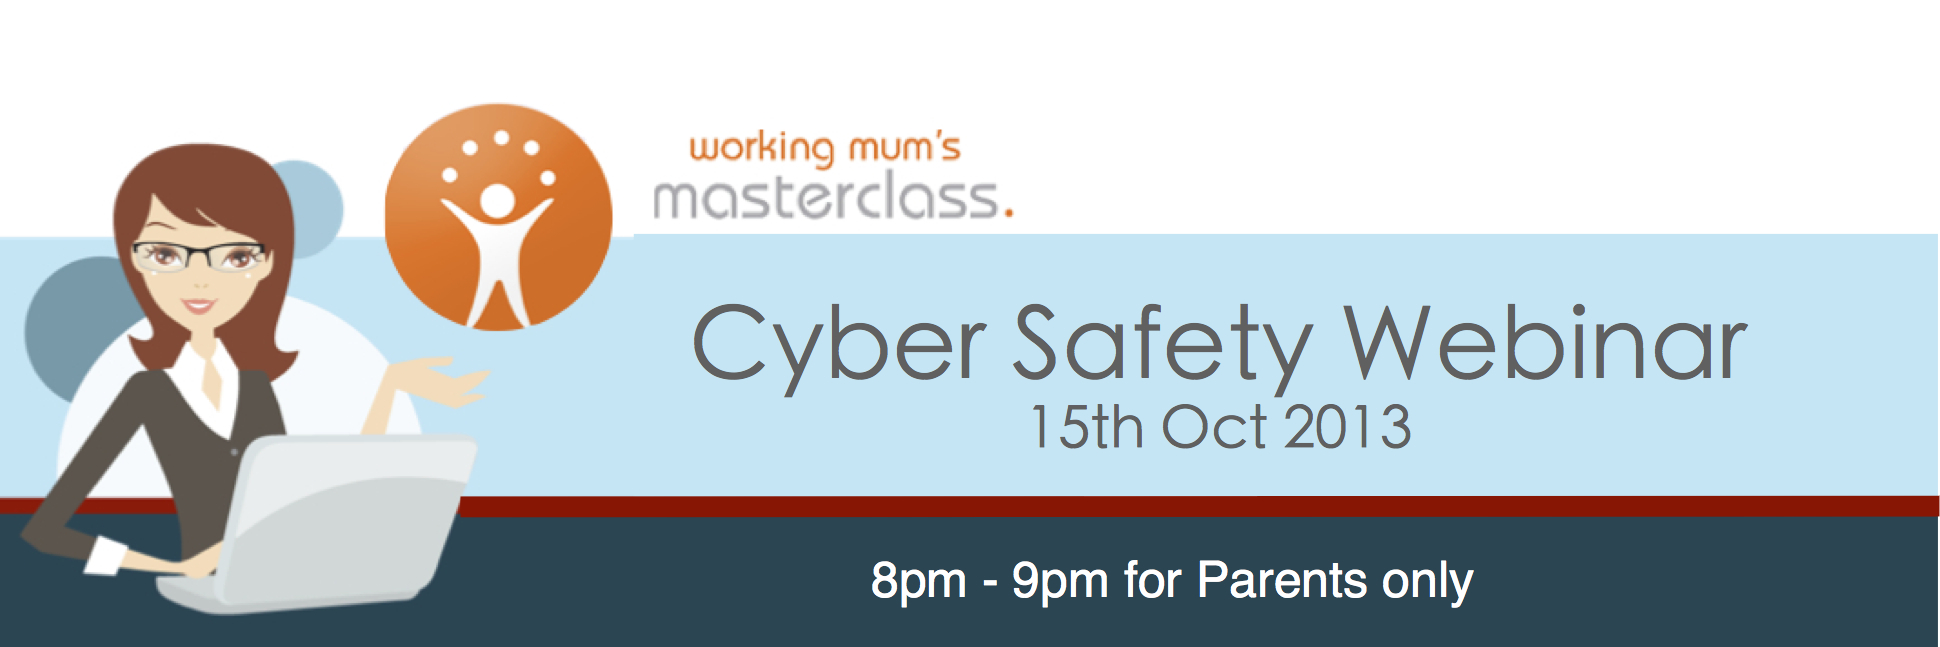 Working Mums Masterclass Header